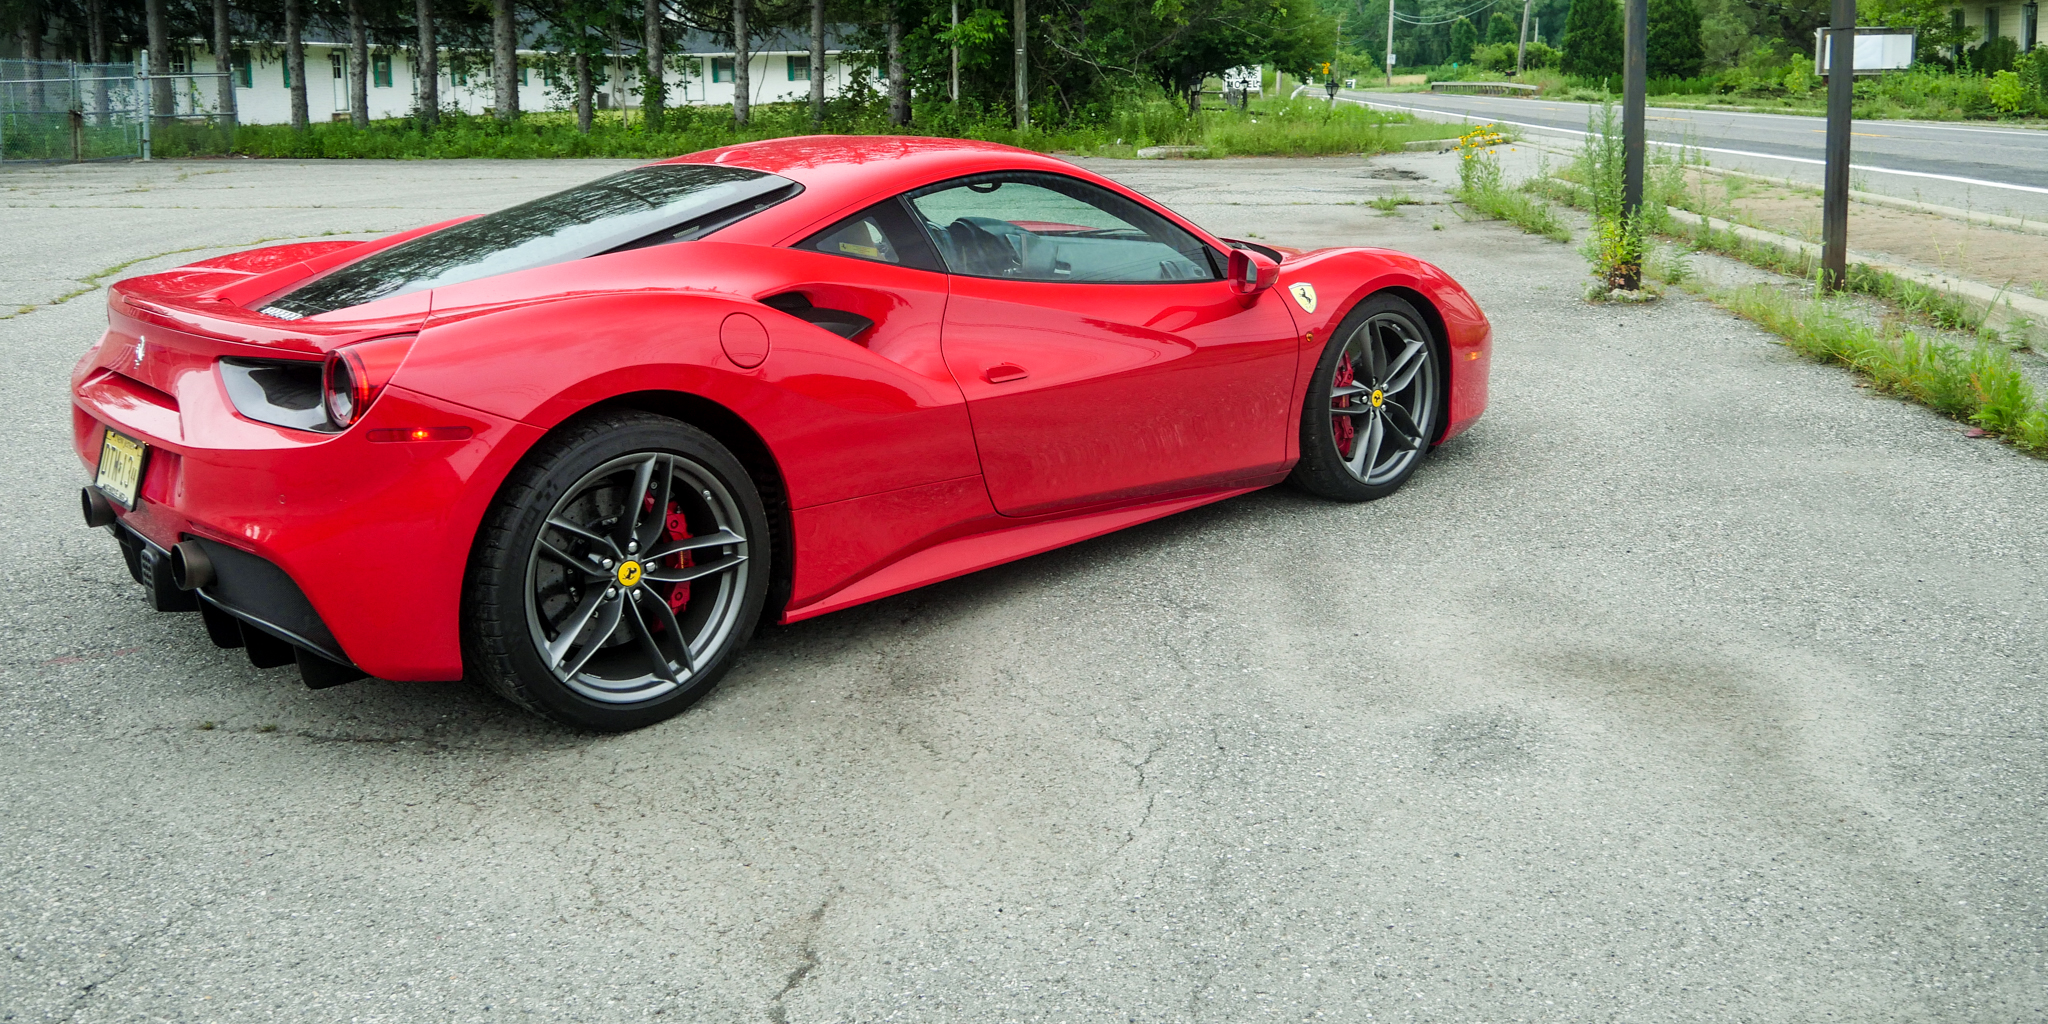 Road tripping in a Ferrari 488 GTB: Worth the wait